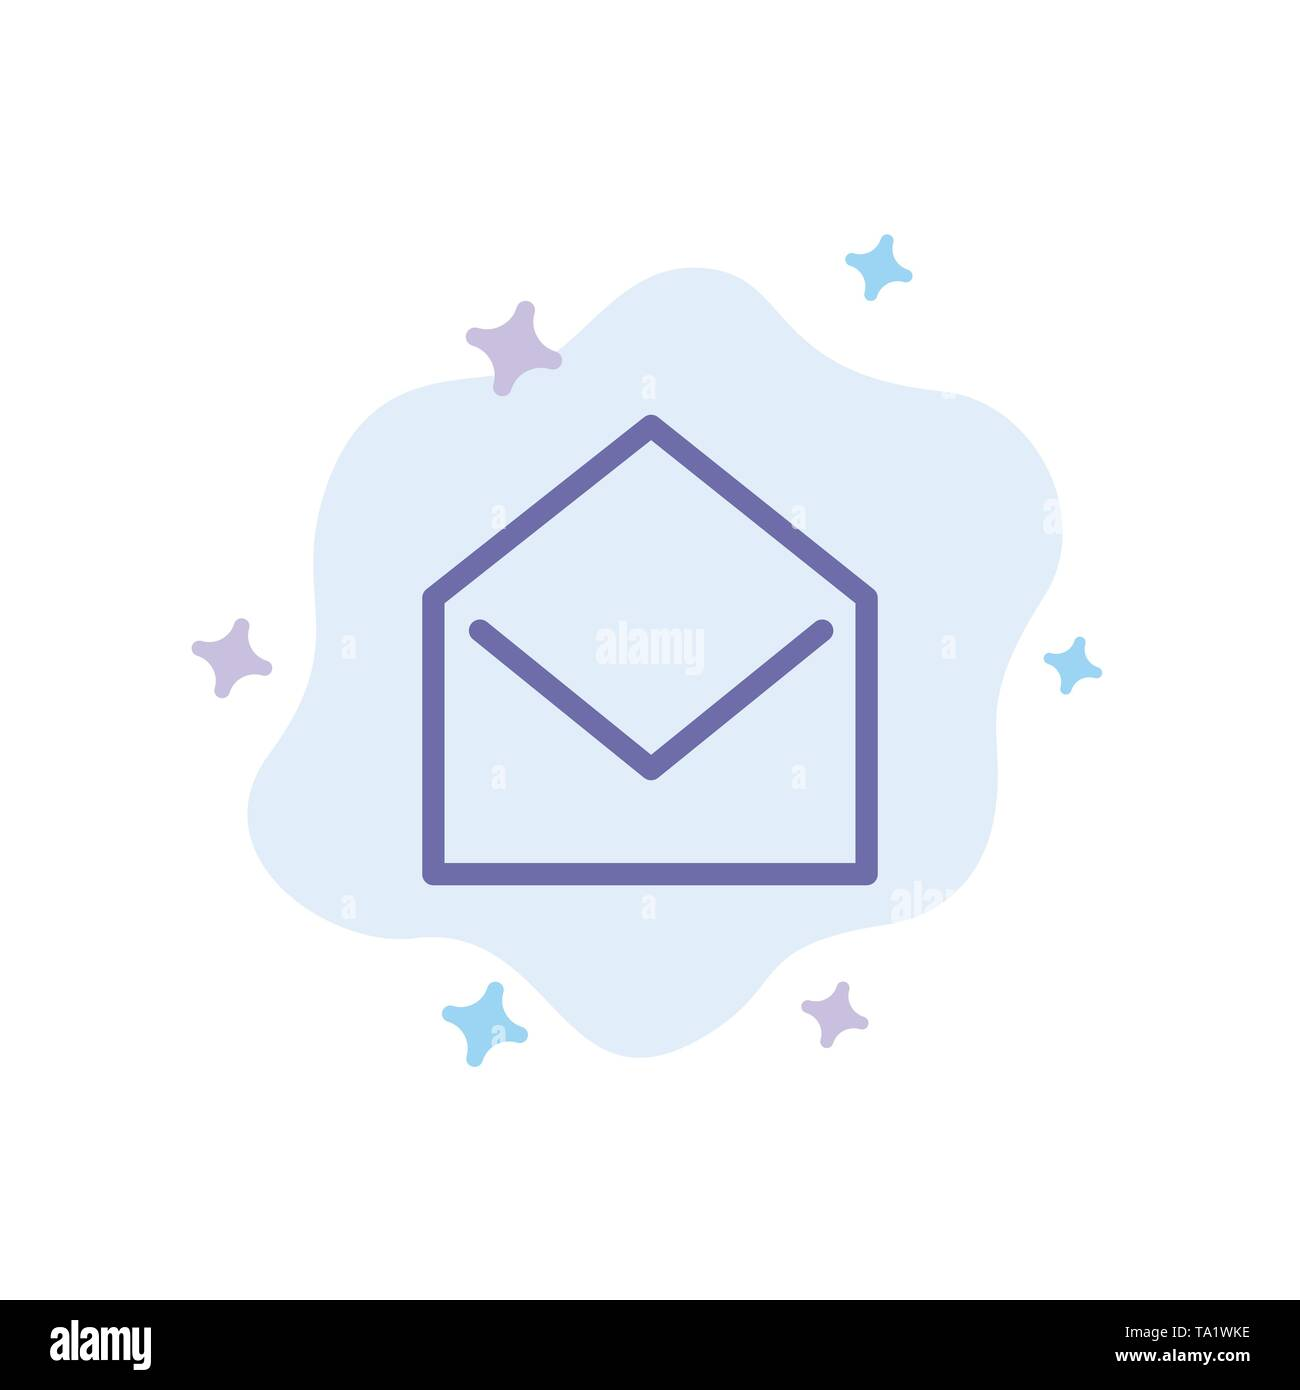 Business, Mail, Message, Open Blue Icon on Abstract Cloud Background - Stock Image